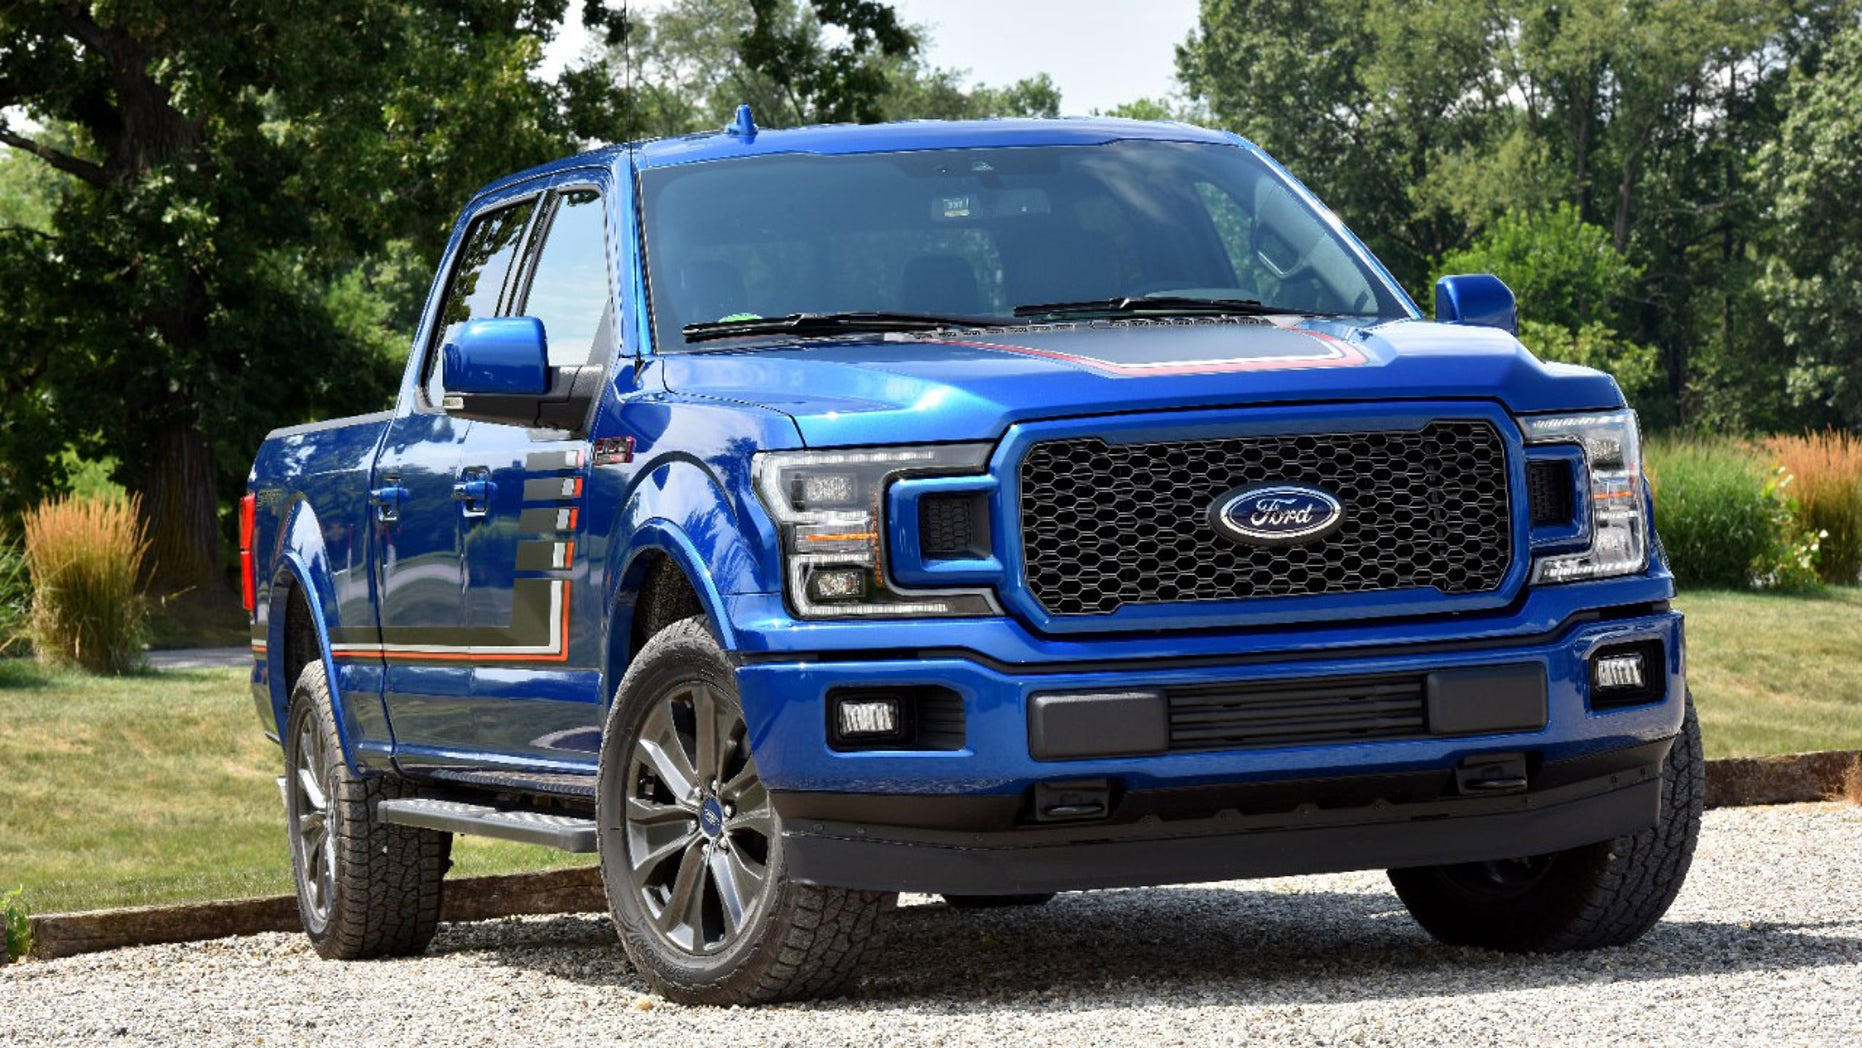 The stream F-150 is offering with gas and diesel engines.